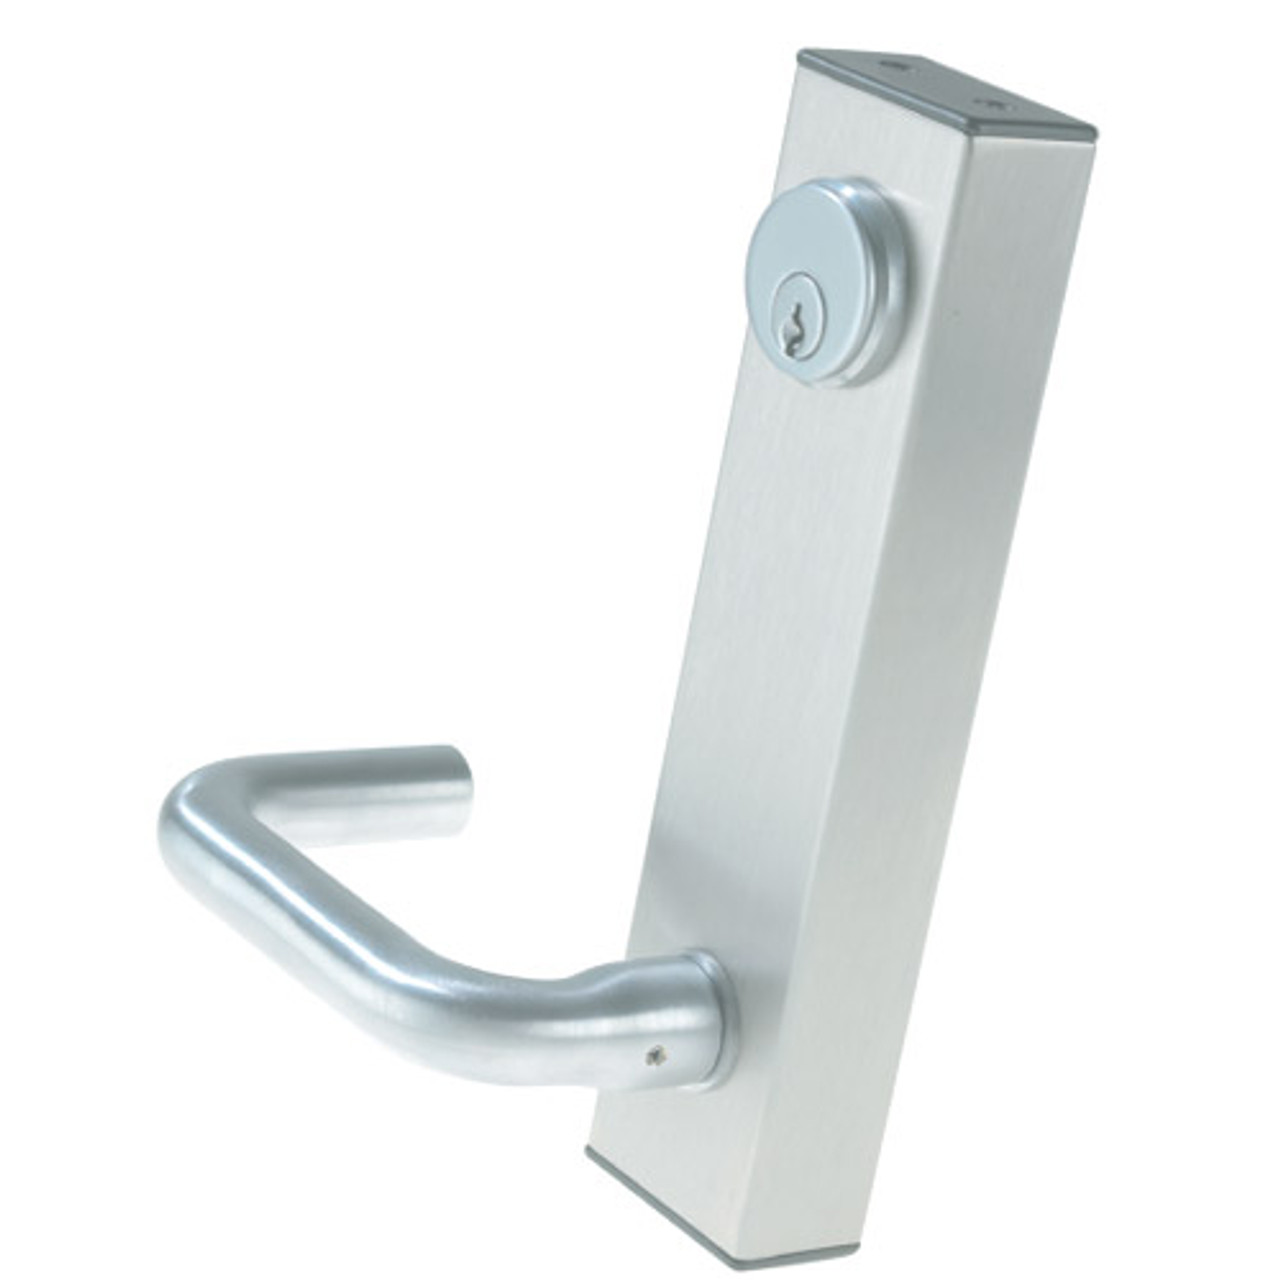 3080E-02-0-36-35 US32 Adams Rite Electrified Entry Trim with Round Lever in Bright Stainless Finish